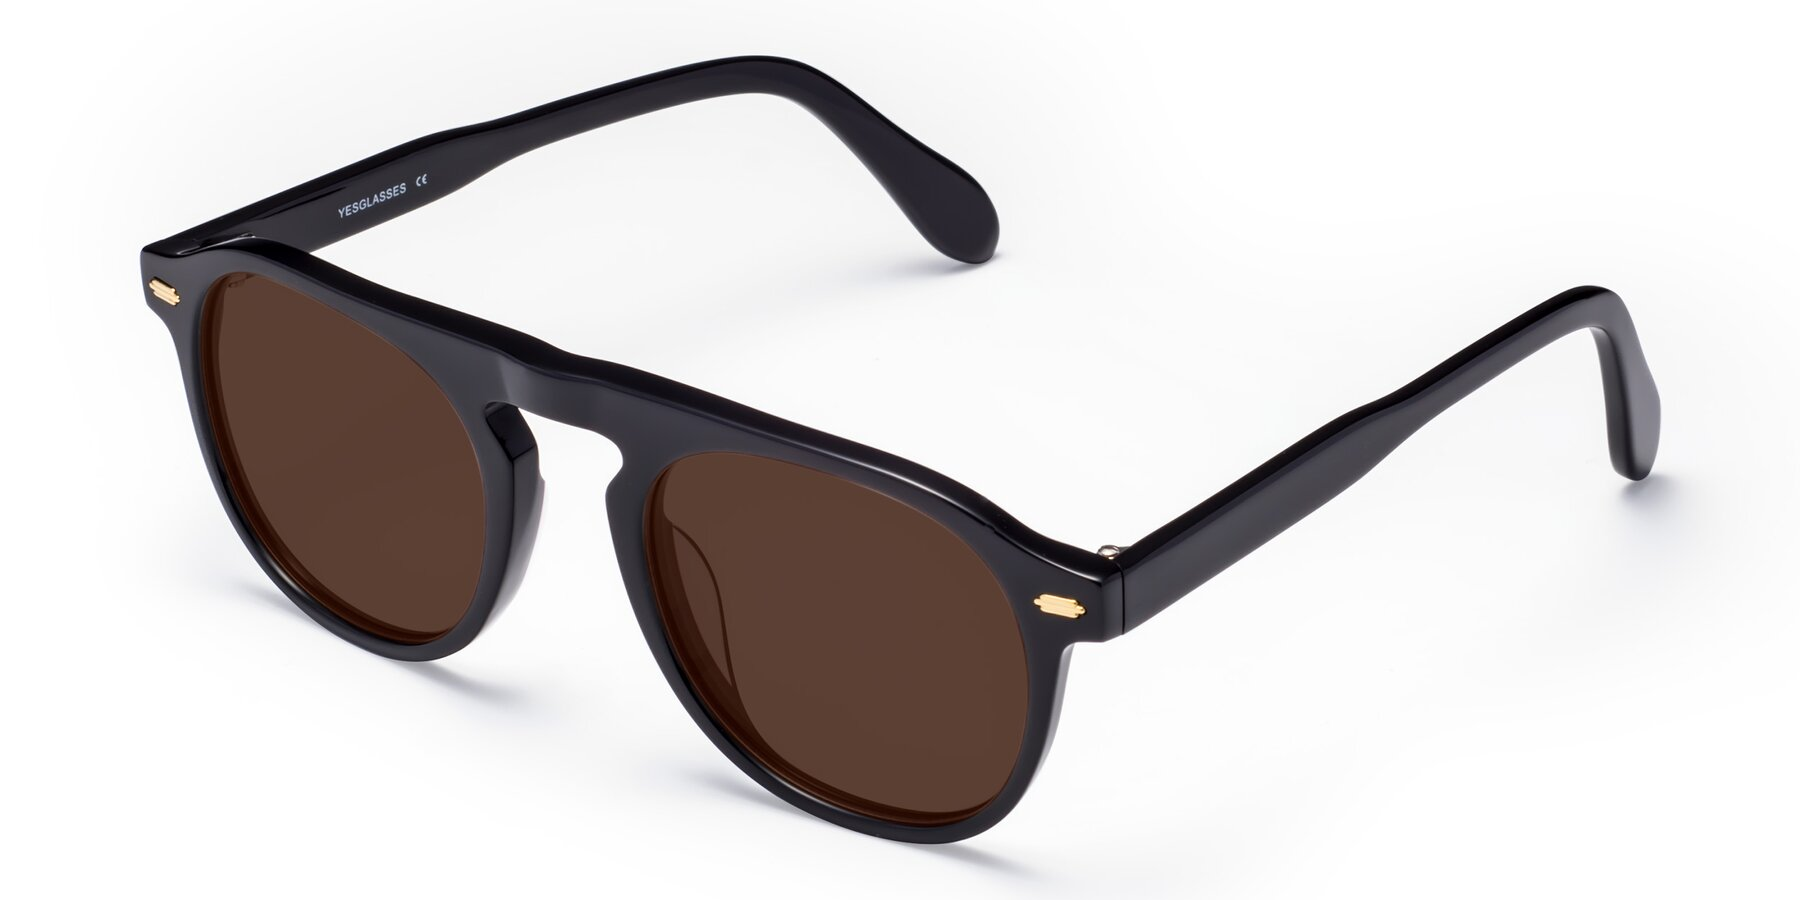 Angle of Mufasa in Black with Brown Tinted Lenses